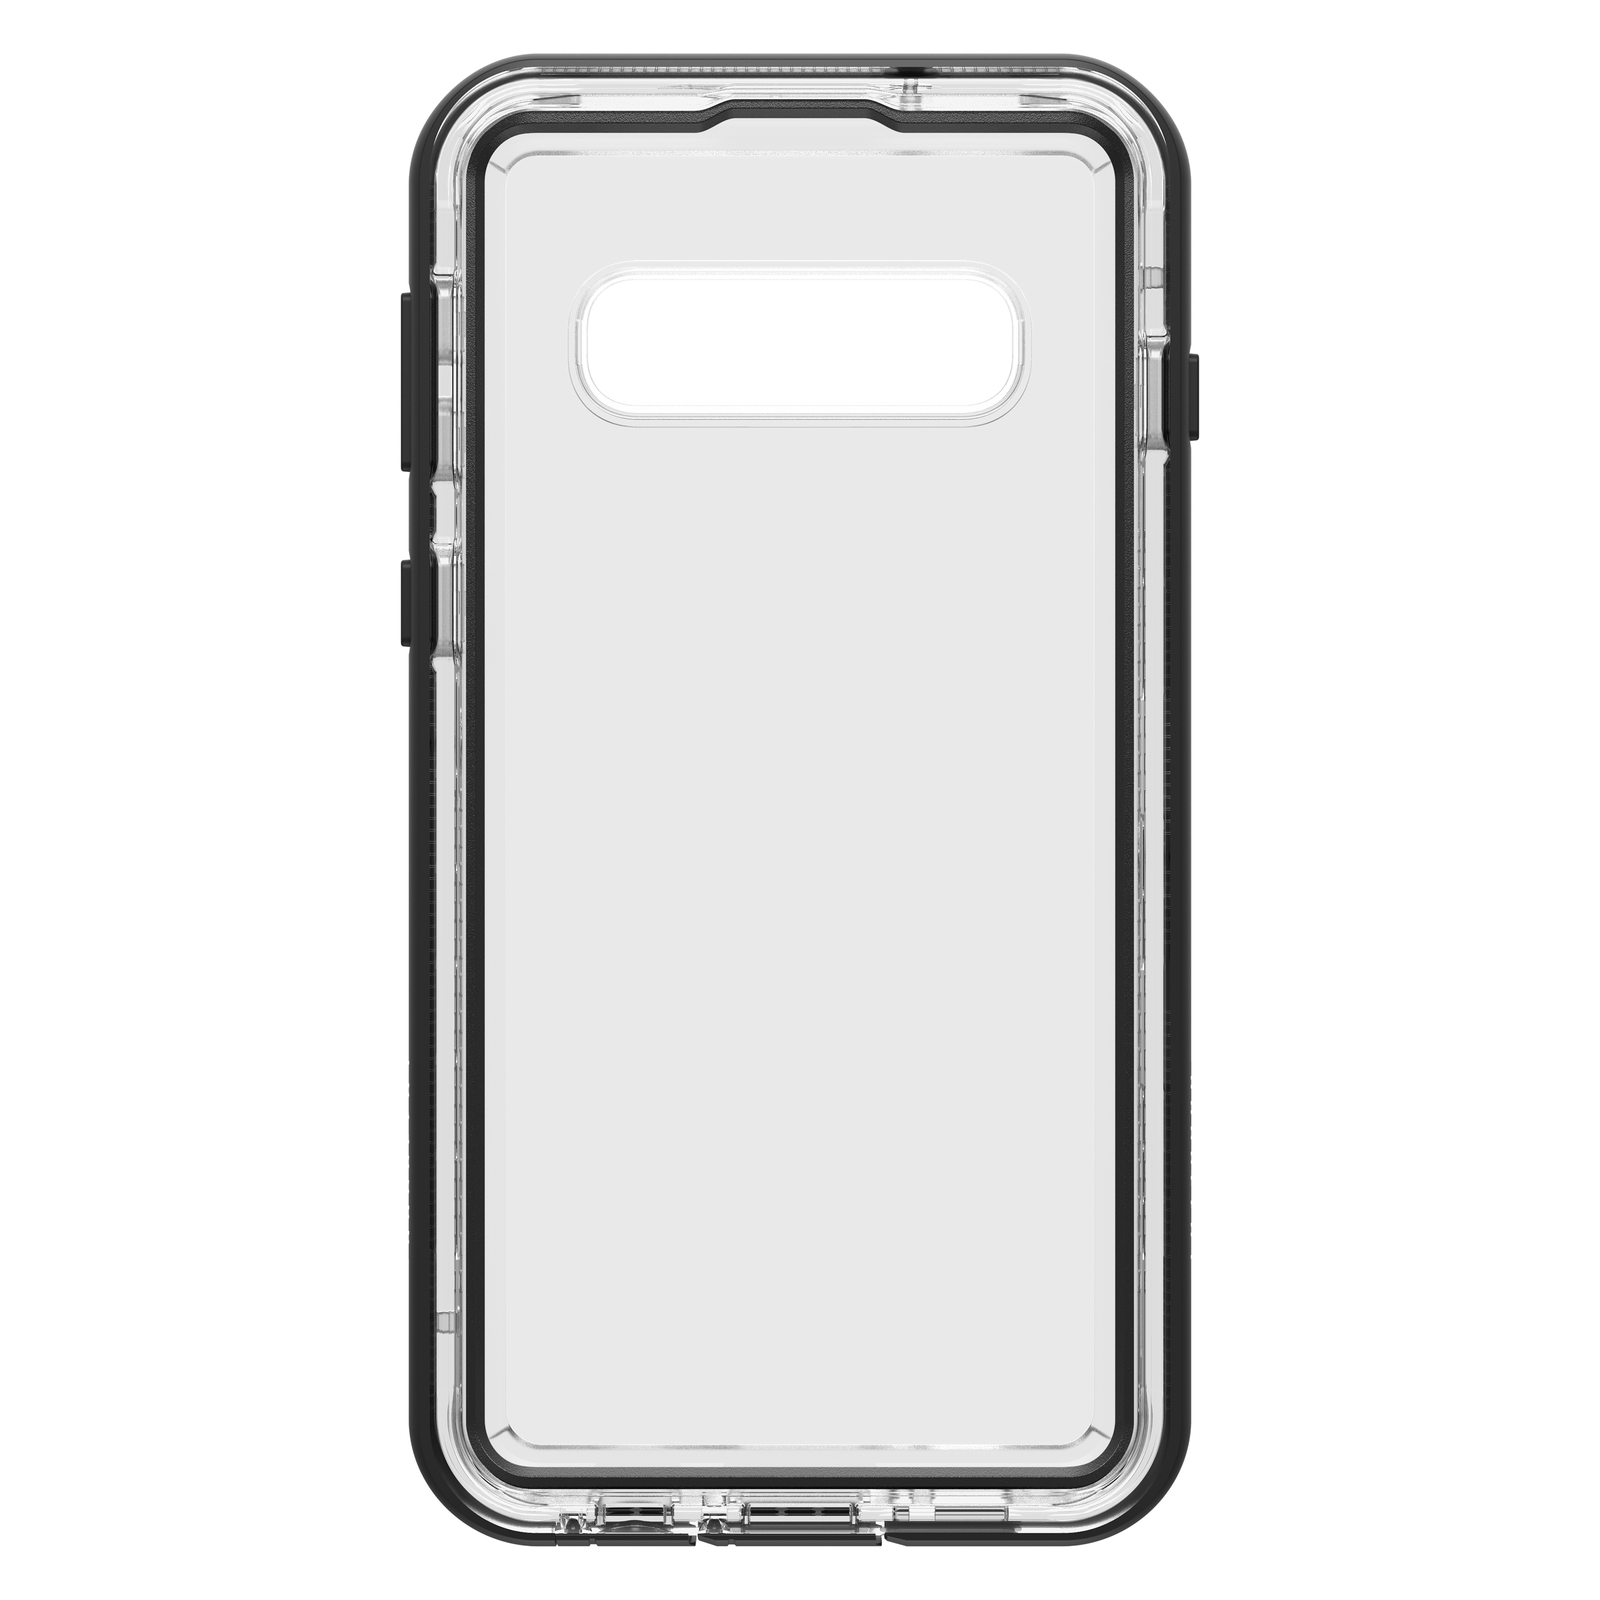 Lifeproof: Next for Galaxy S10 - Black Crystal image